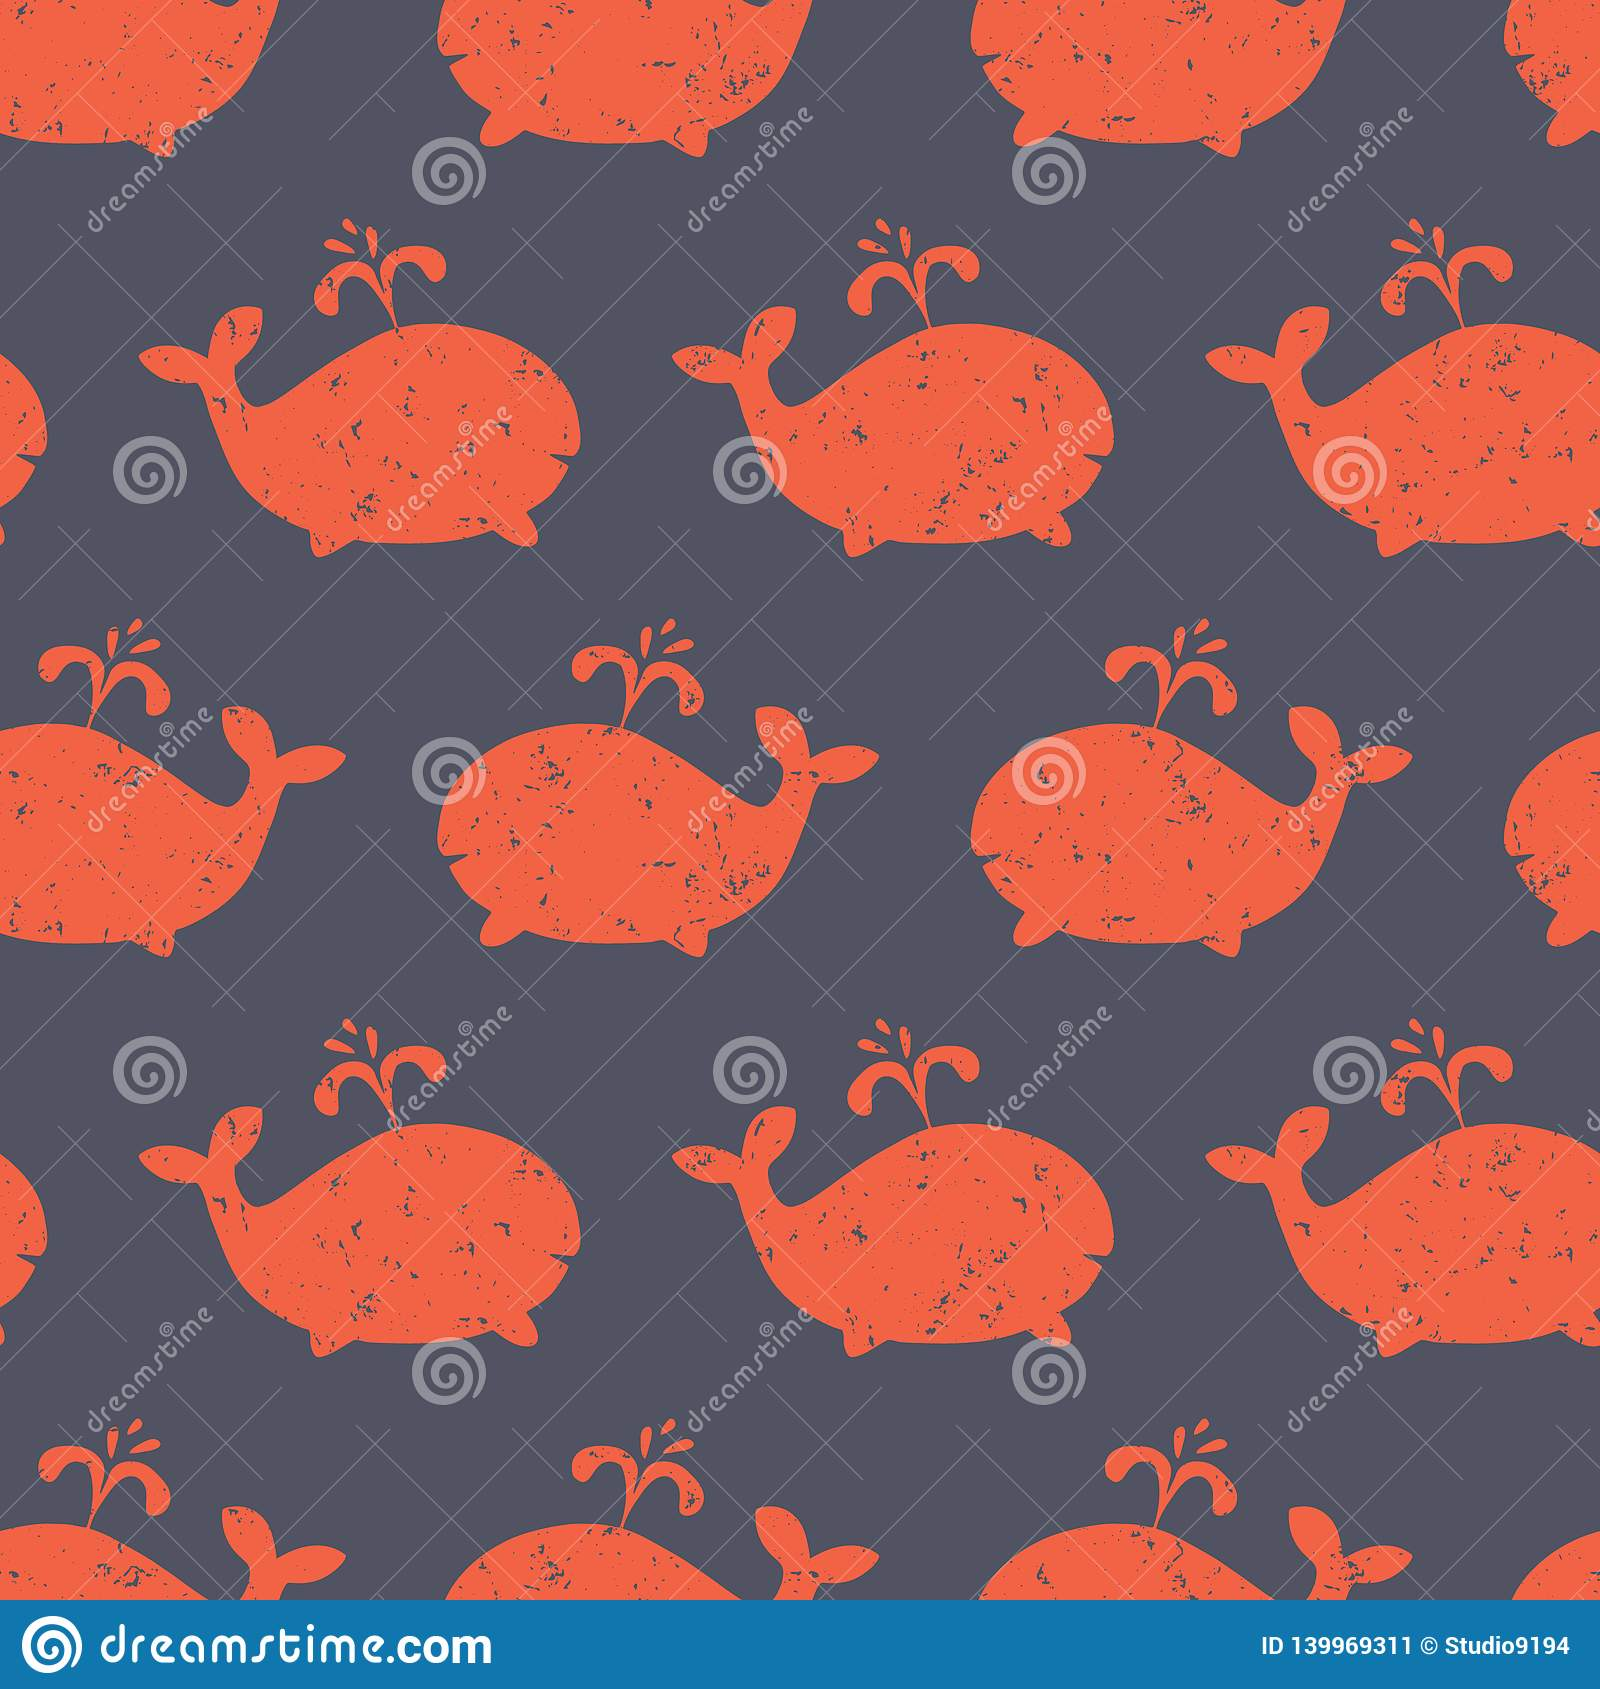 Kids Pattern Whale Shapes Seamless Vector Cute Background With Distressed Red Whale Silhouettes On Blue Baby Shower Design Stock Vector Illustration Of Nursery Doodle 139969311